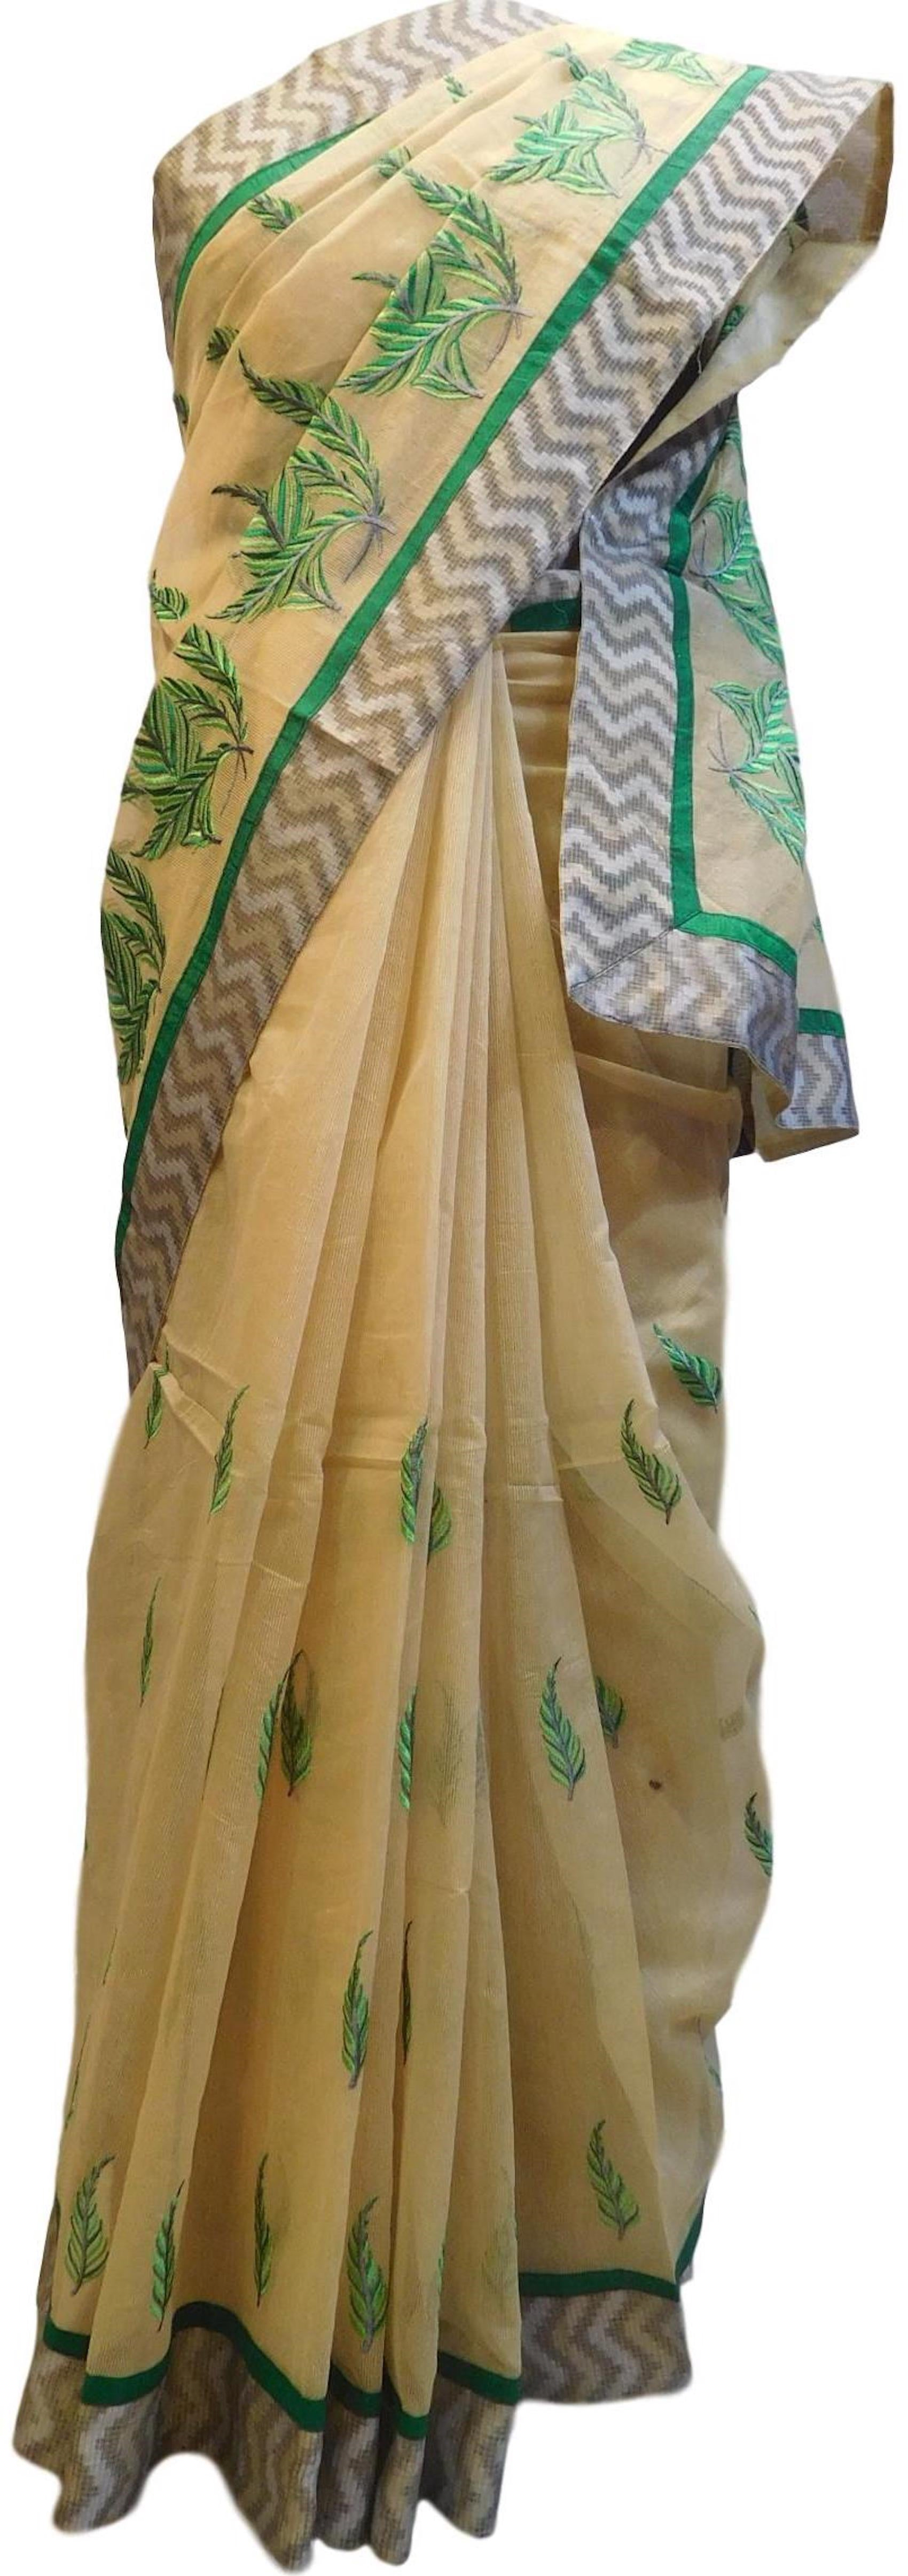 Beige Designer PartyWear Pure Supernet (Cotton) Thread Work Saree Sari With Grey Border E219